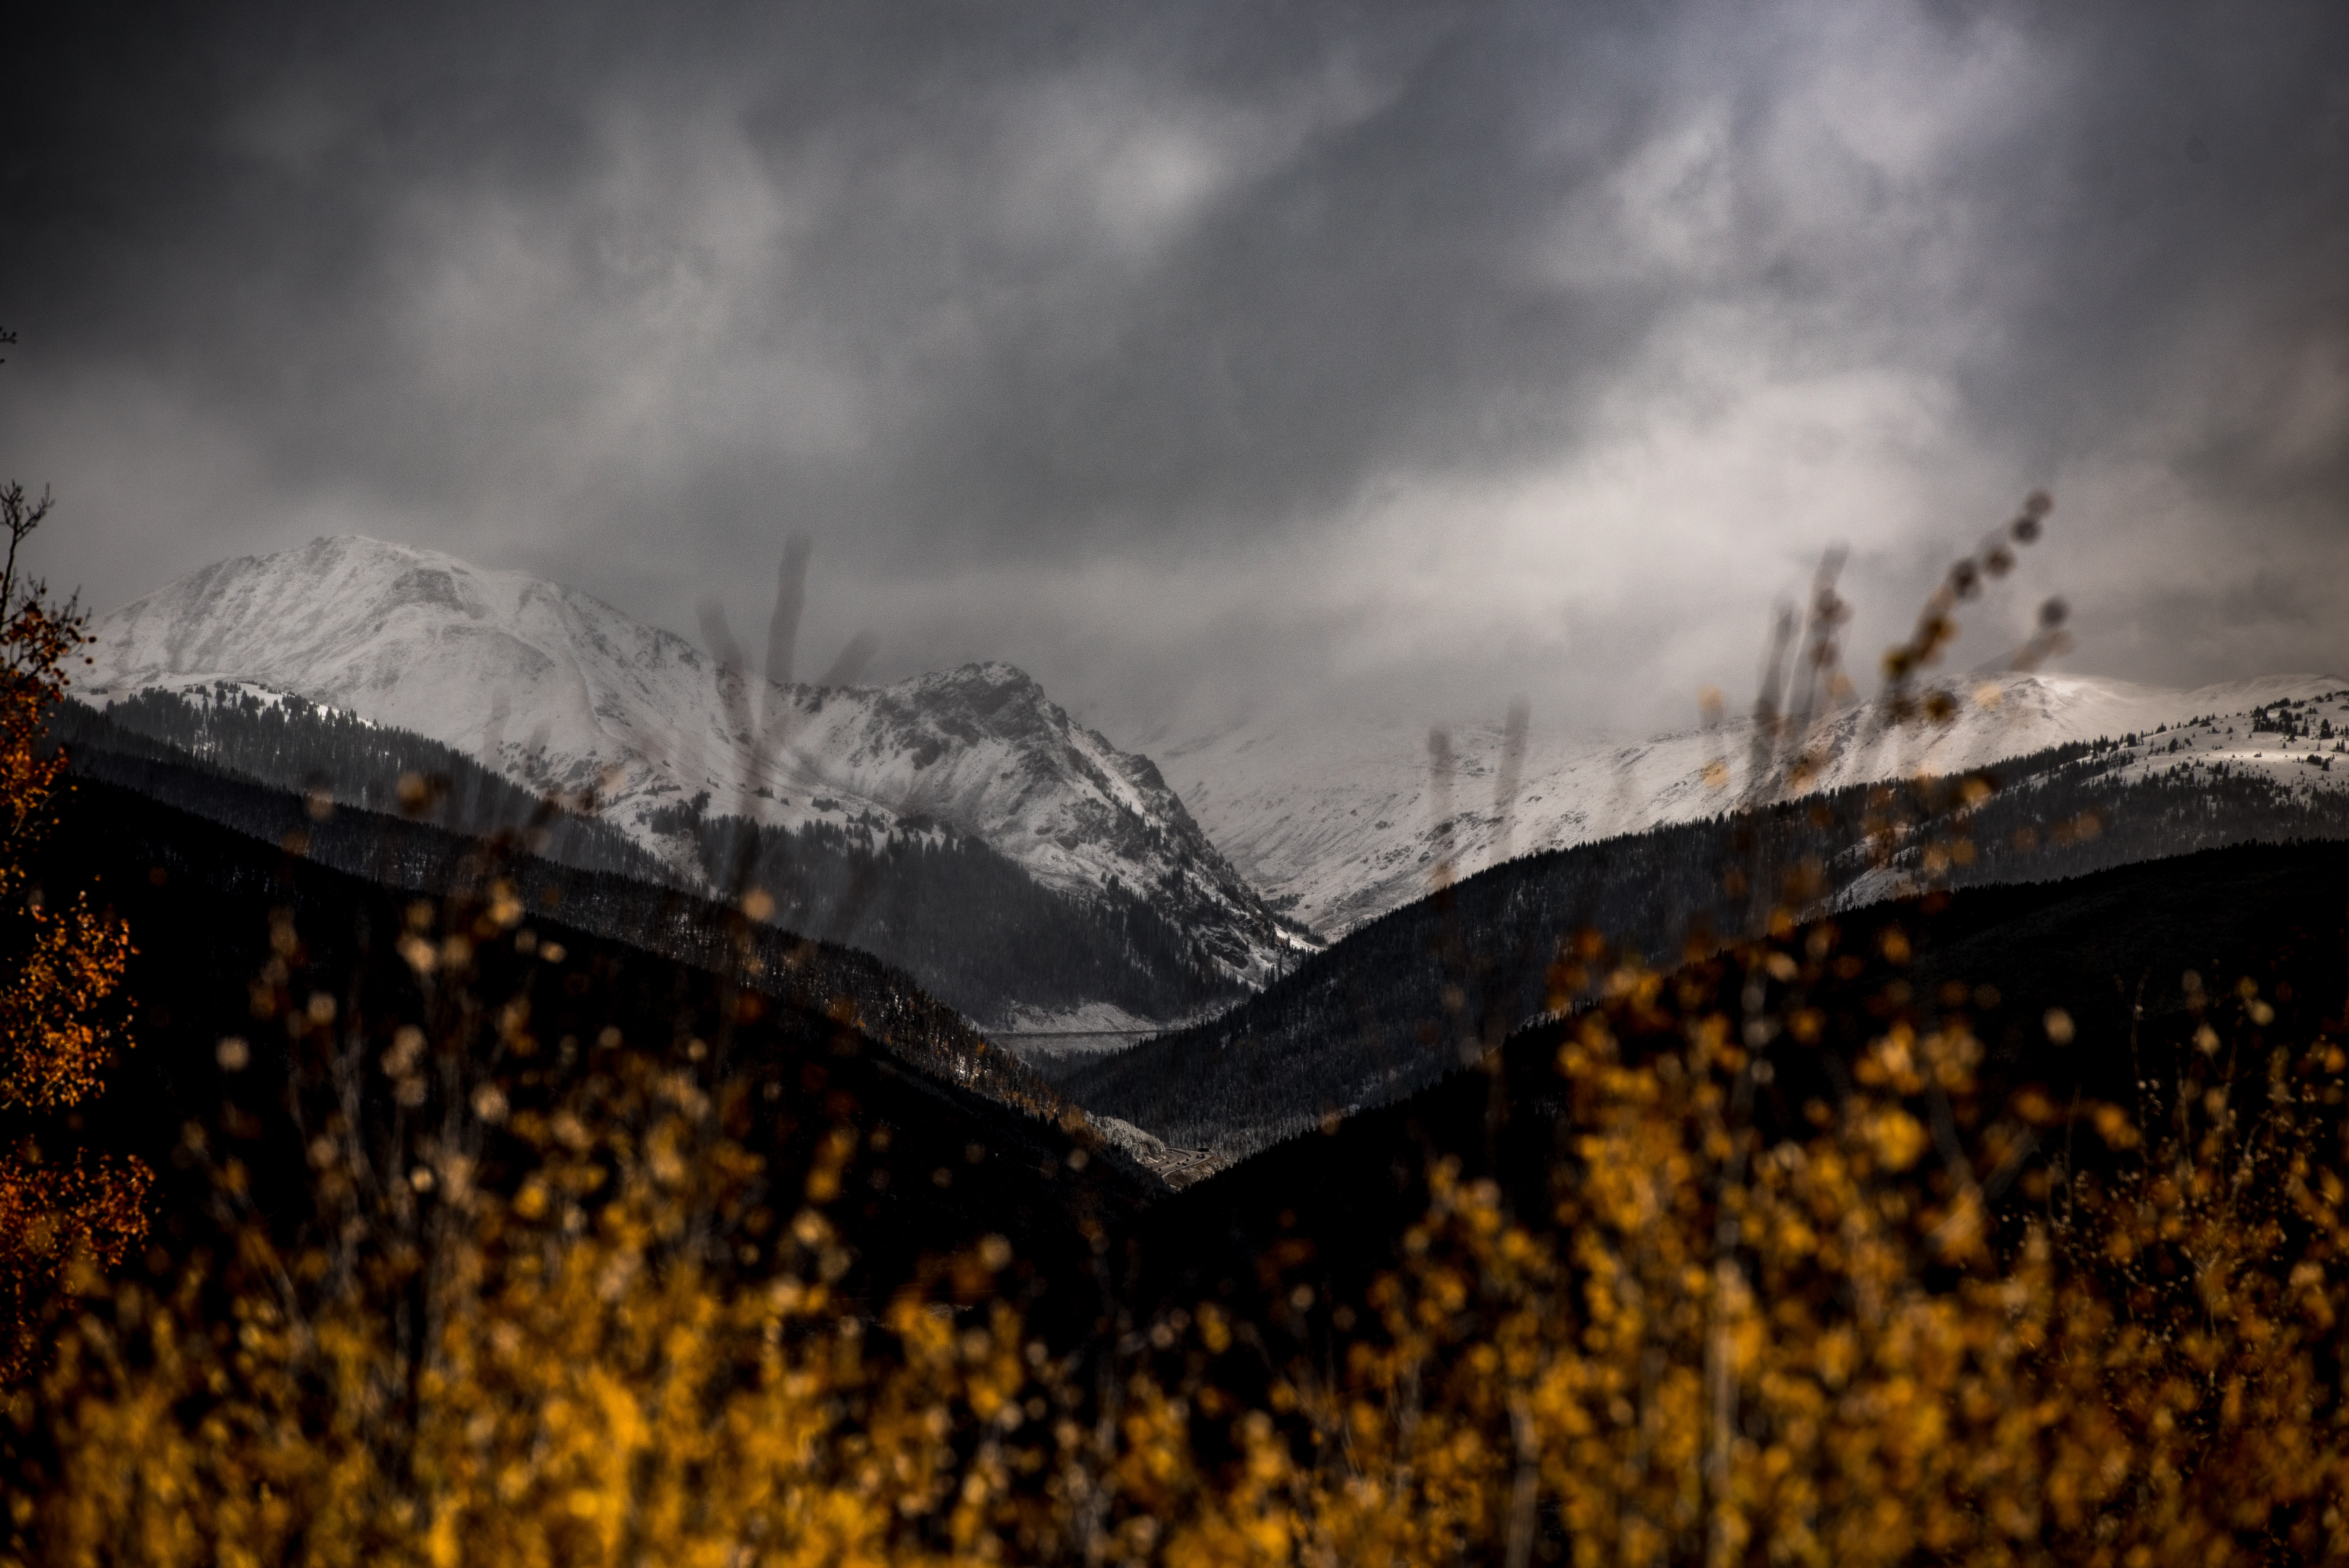 snow mountain covered by dark clouds